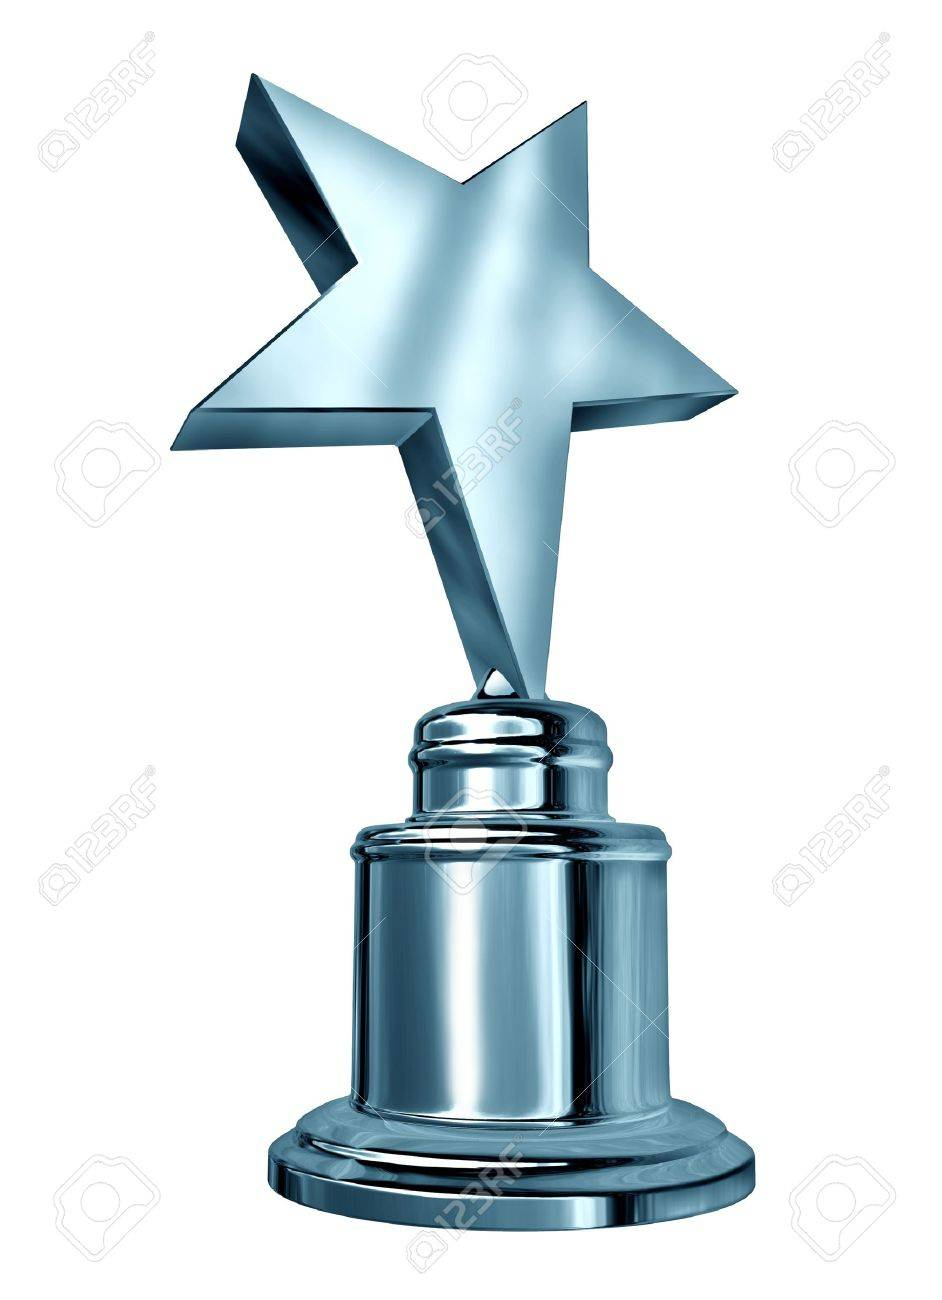 Silver star award on a blank metal trophy isolated on white Stock Photo - 12668100